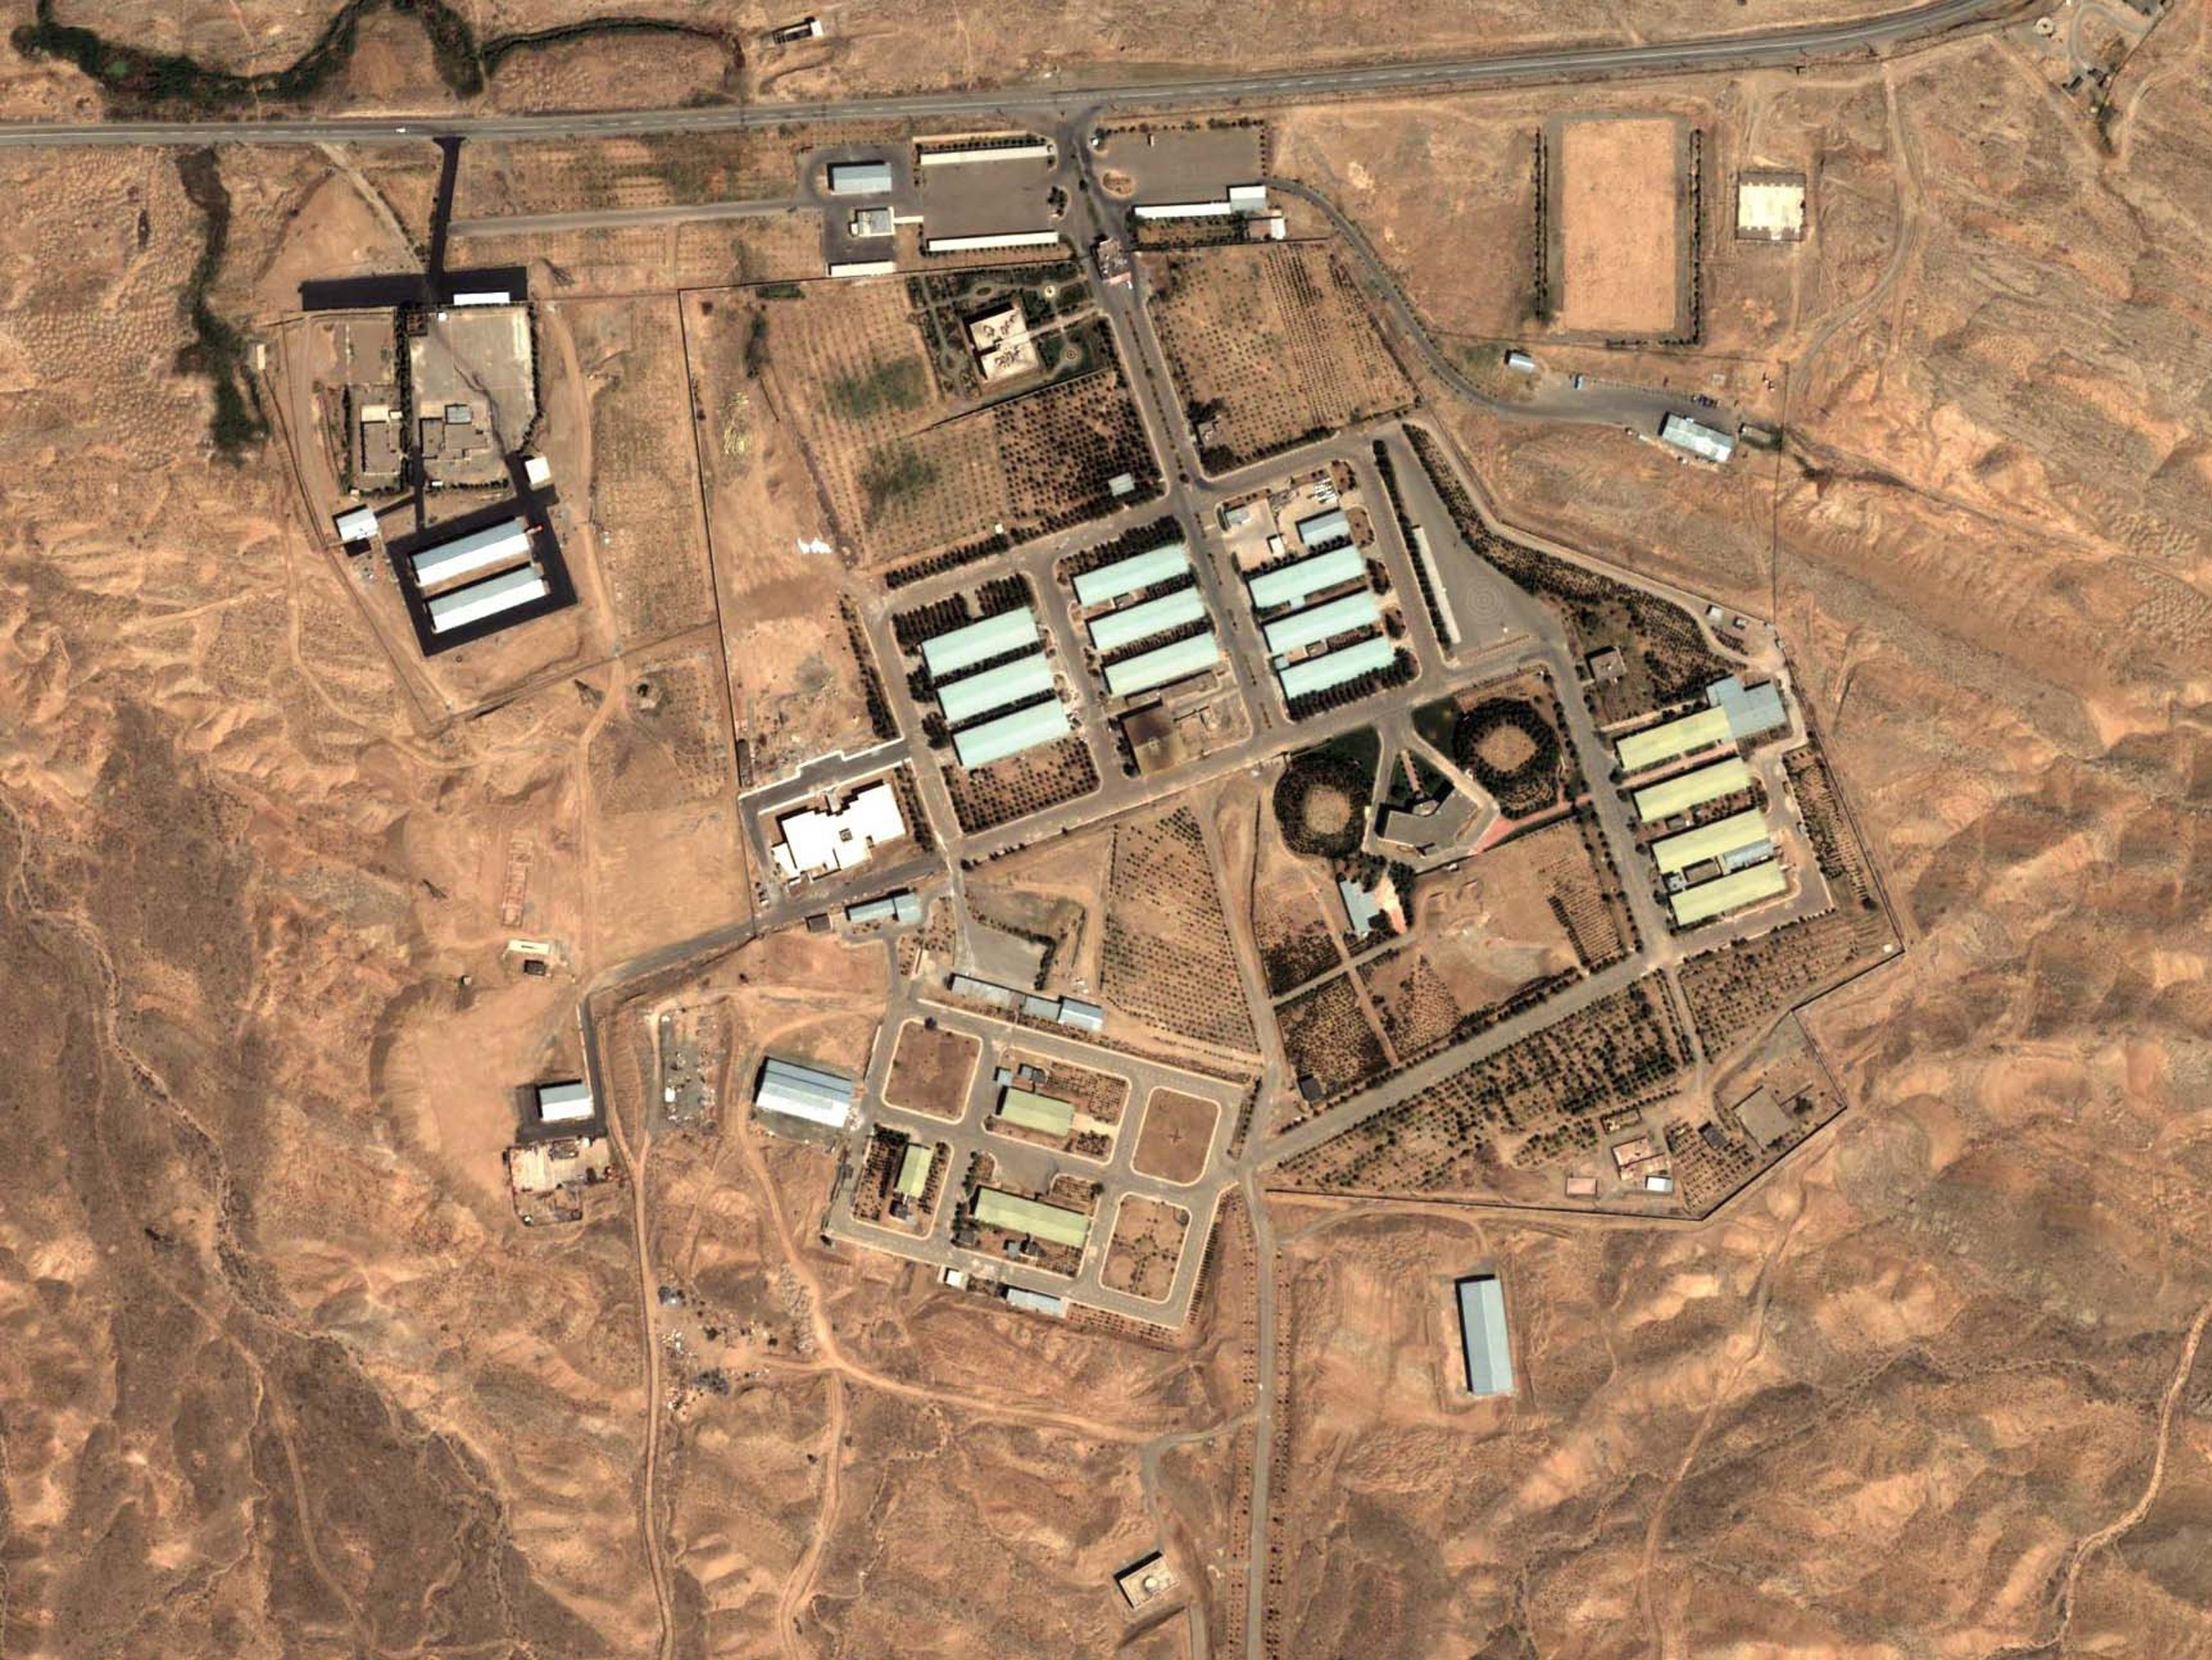 One Iranian site of particular interest to U.S. intelligence officials is the military complex at Parchin, about 20 miles southeast of the capital, Tehran. The complex is shown here in a 2004 satellite image.